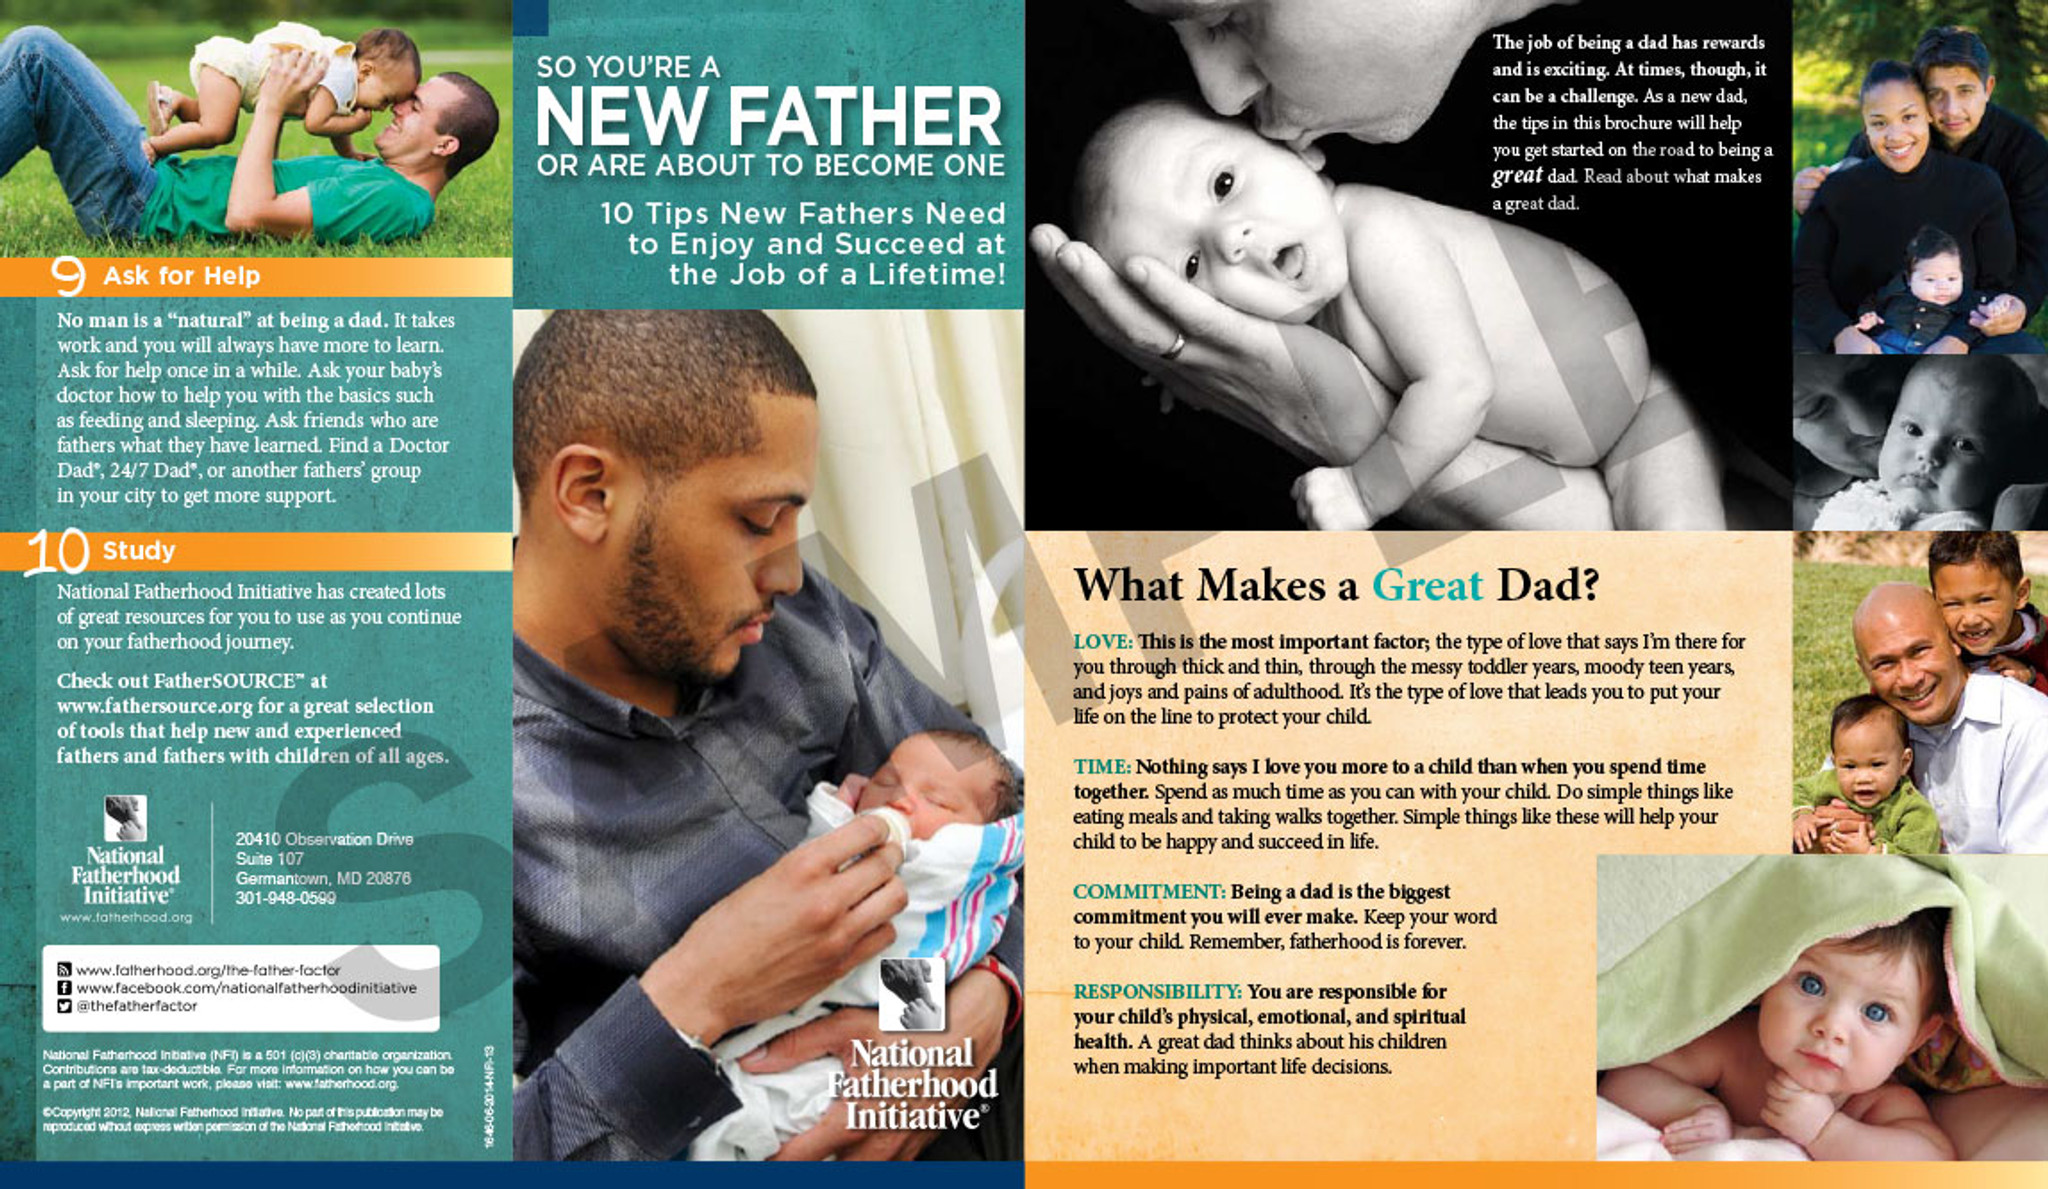 marriage-teens-fathering-rating